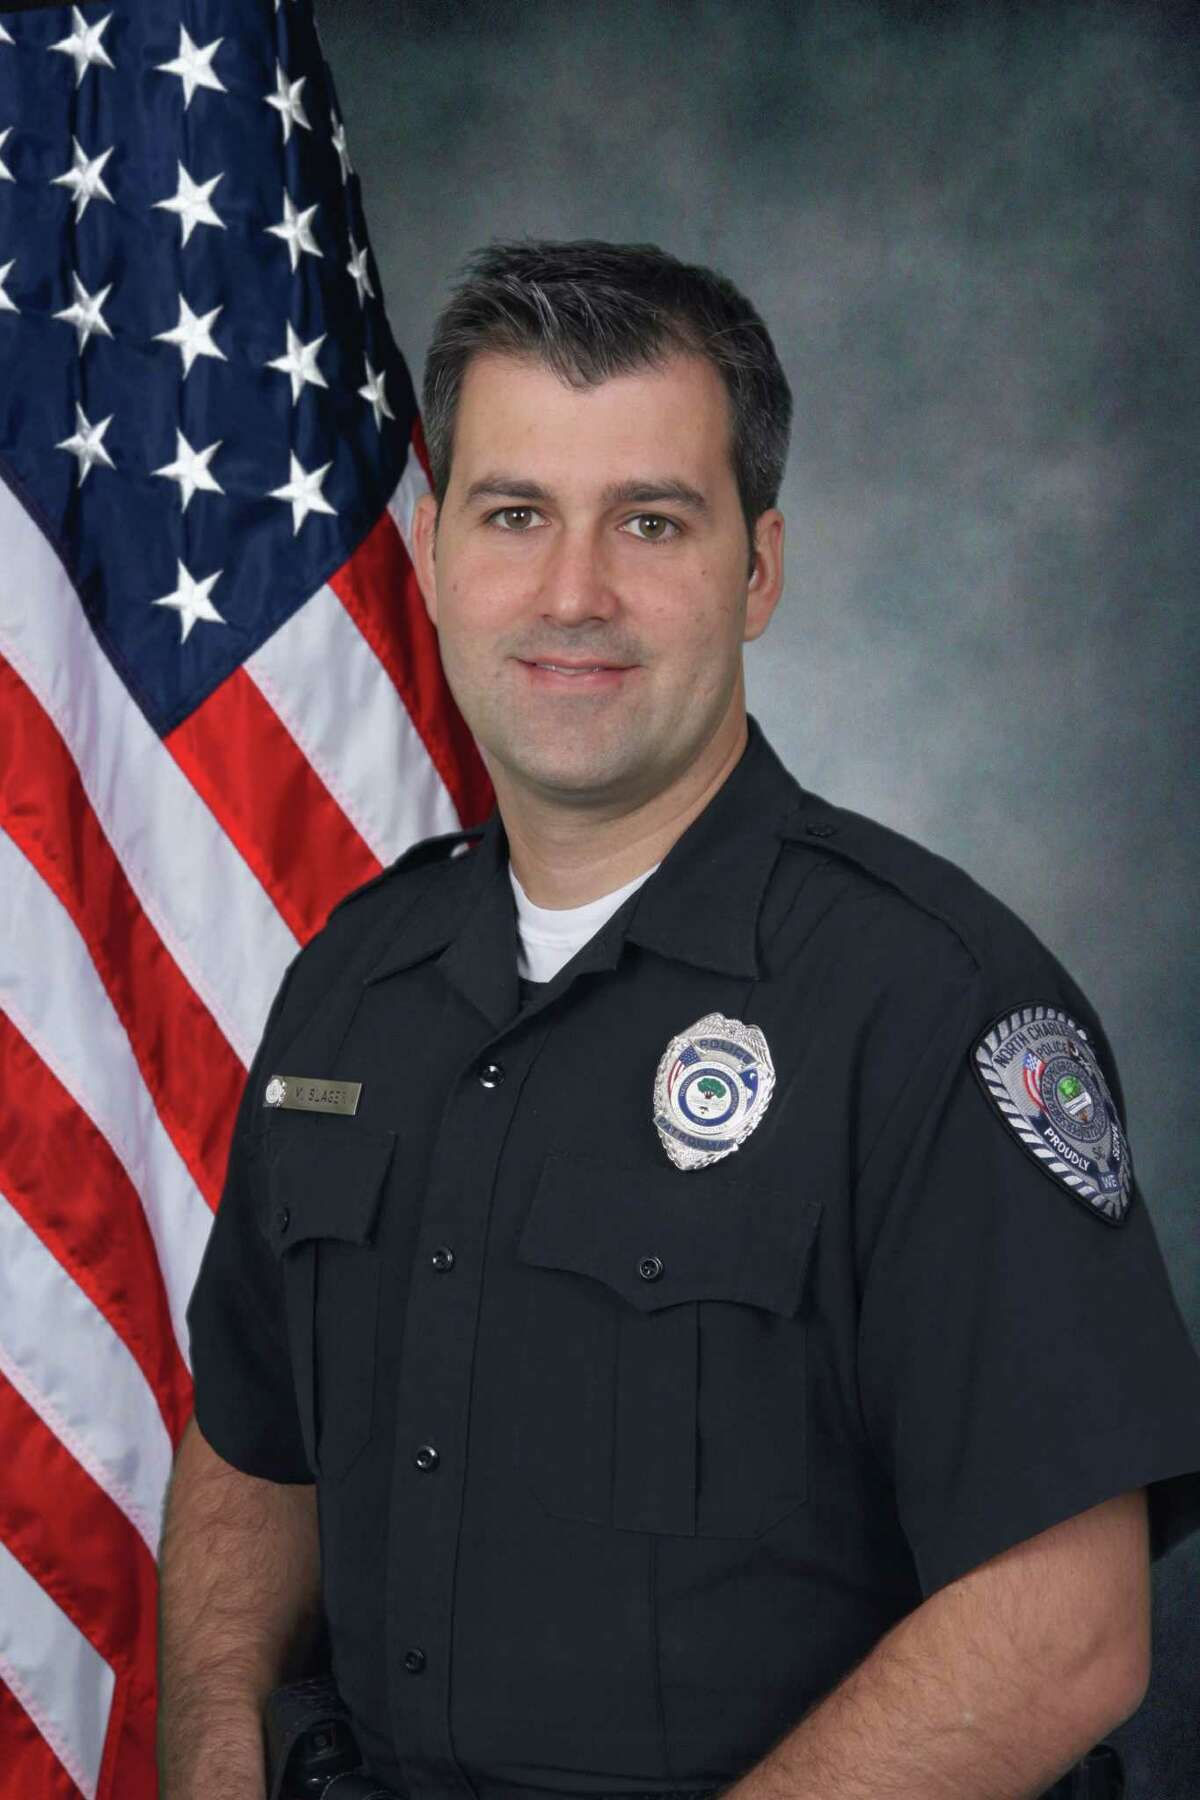 In this undated photo provided by the North Charleston Police Department shows City Patrolman Michael Thomas Slager. Slager has been charged with murder in the shooting death of a black motorist after a traffic stop. North Charleston Mayor Keith Summey told a news conference that city Slager was arrested and charged Tuesday, April 7, 2015, after law enforcement officials saw a video of the shooting following a Saturday traffic stop. (AP Photo/North Charleston Police Department)